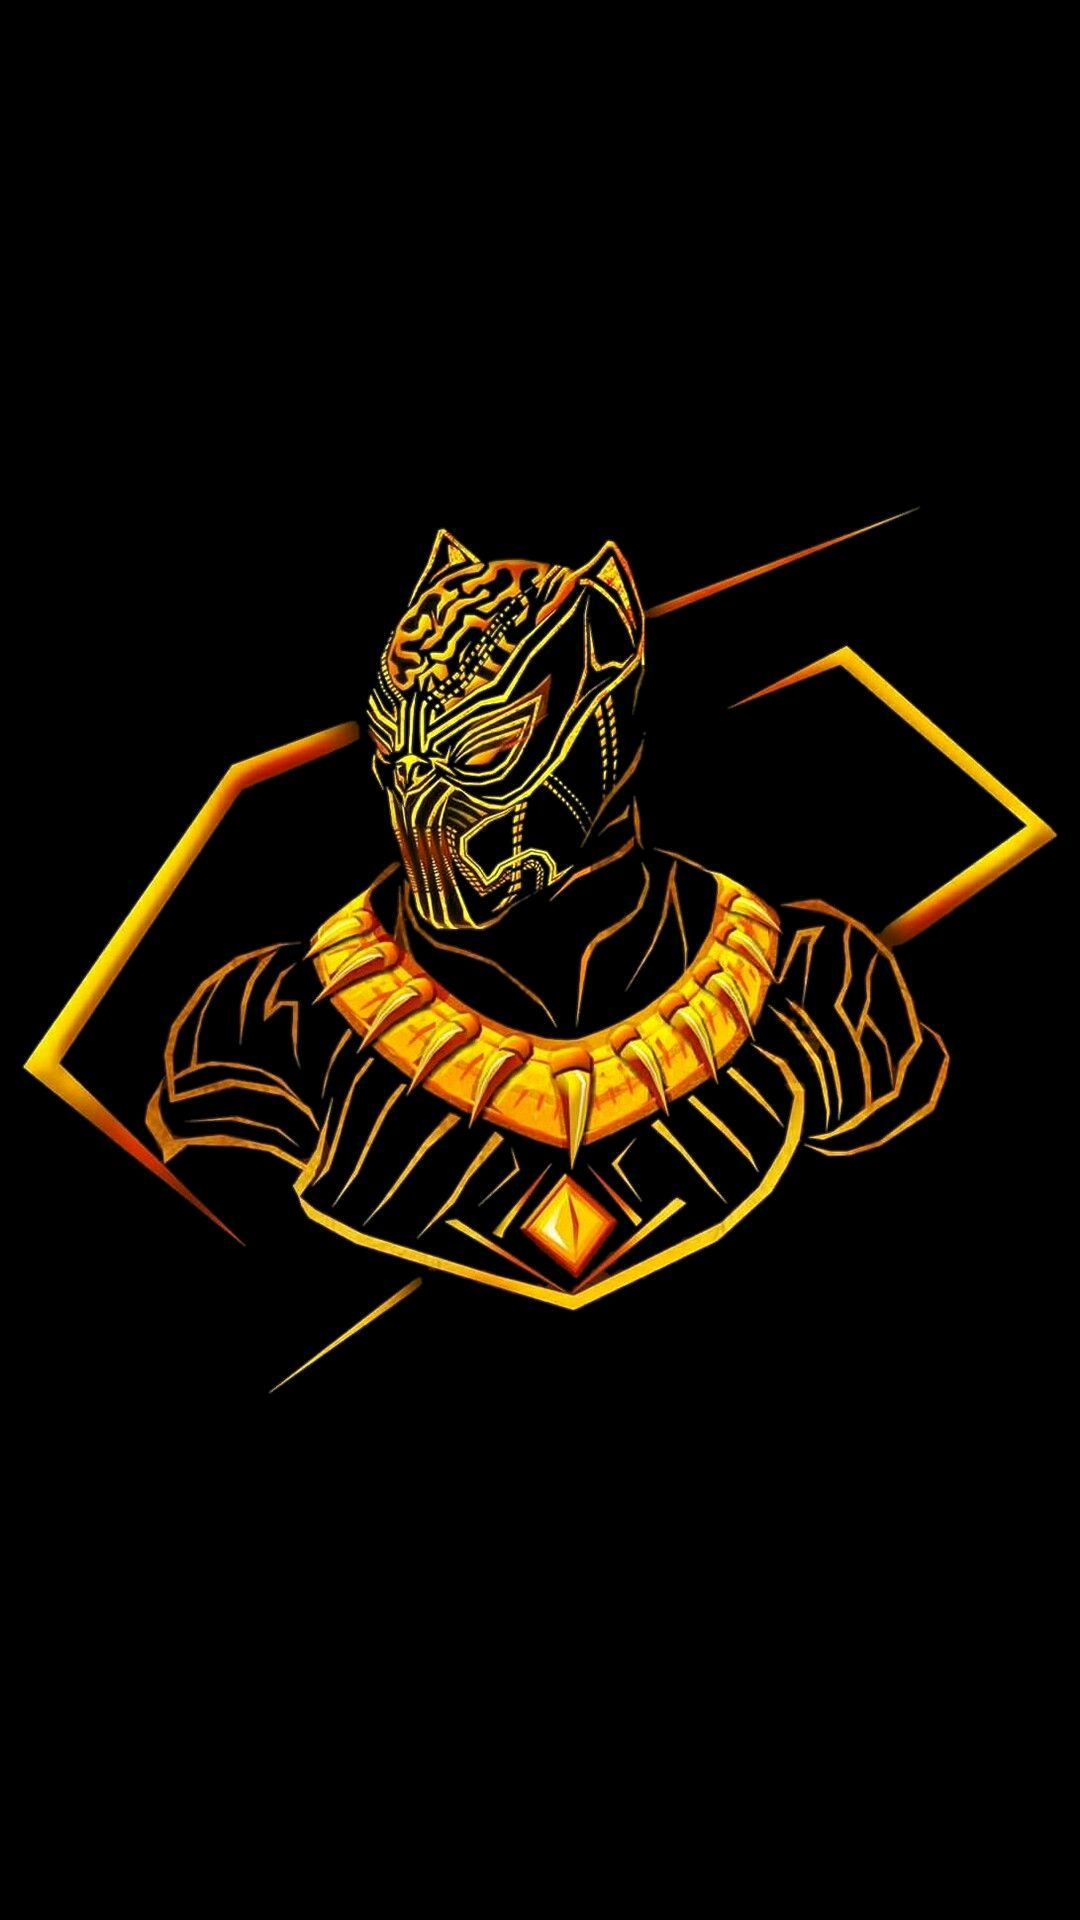 16 Black Panther Gold Wallpapers On Wallpapersafari